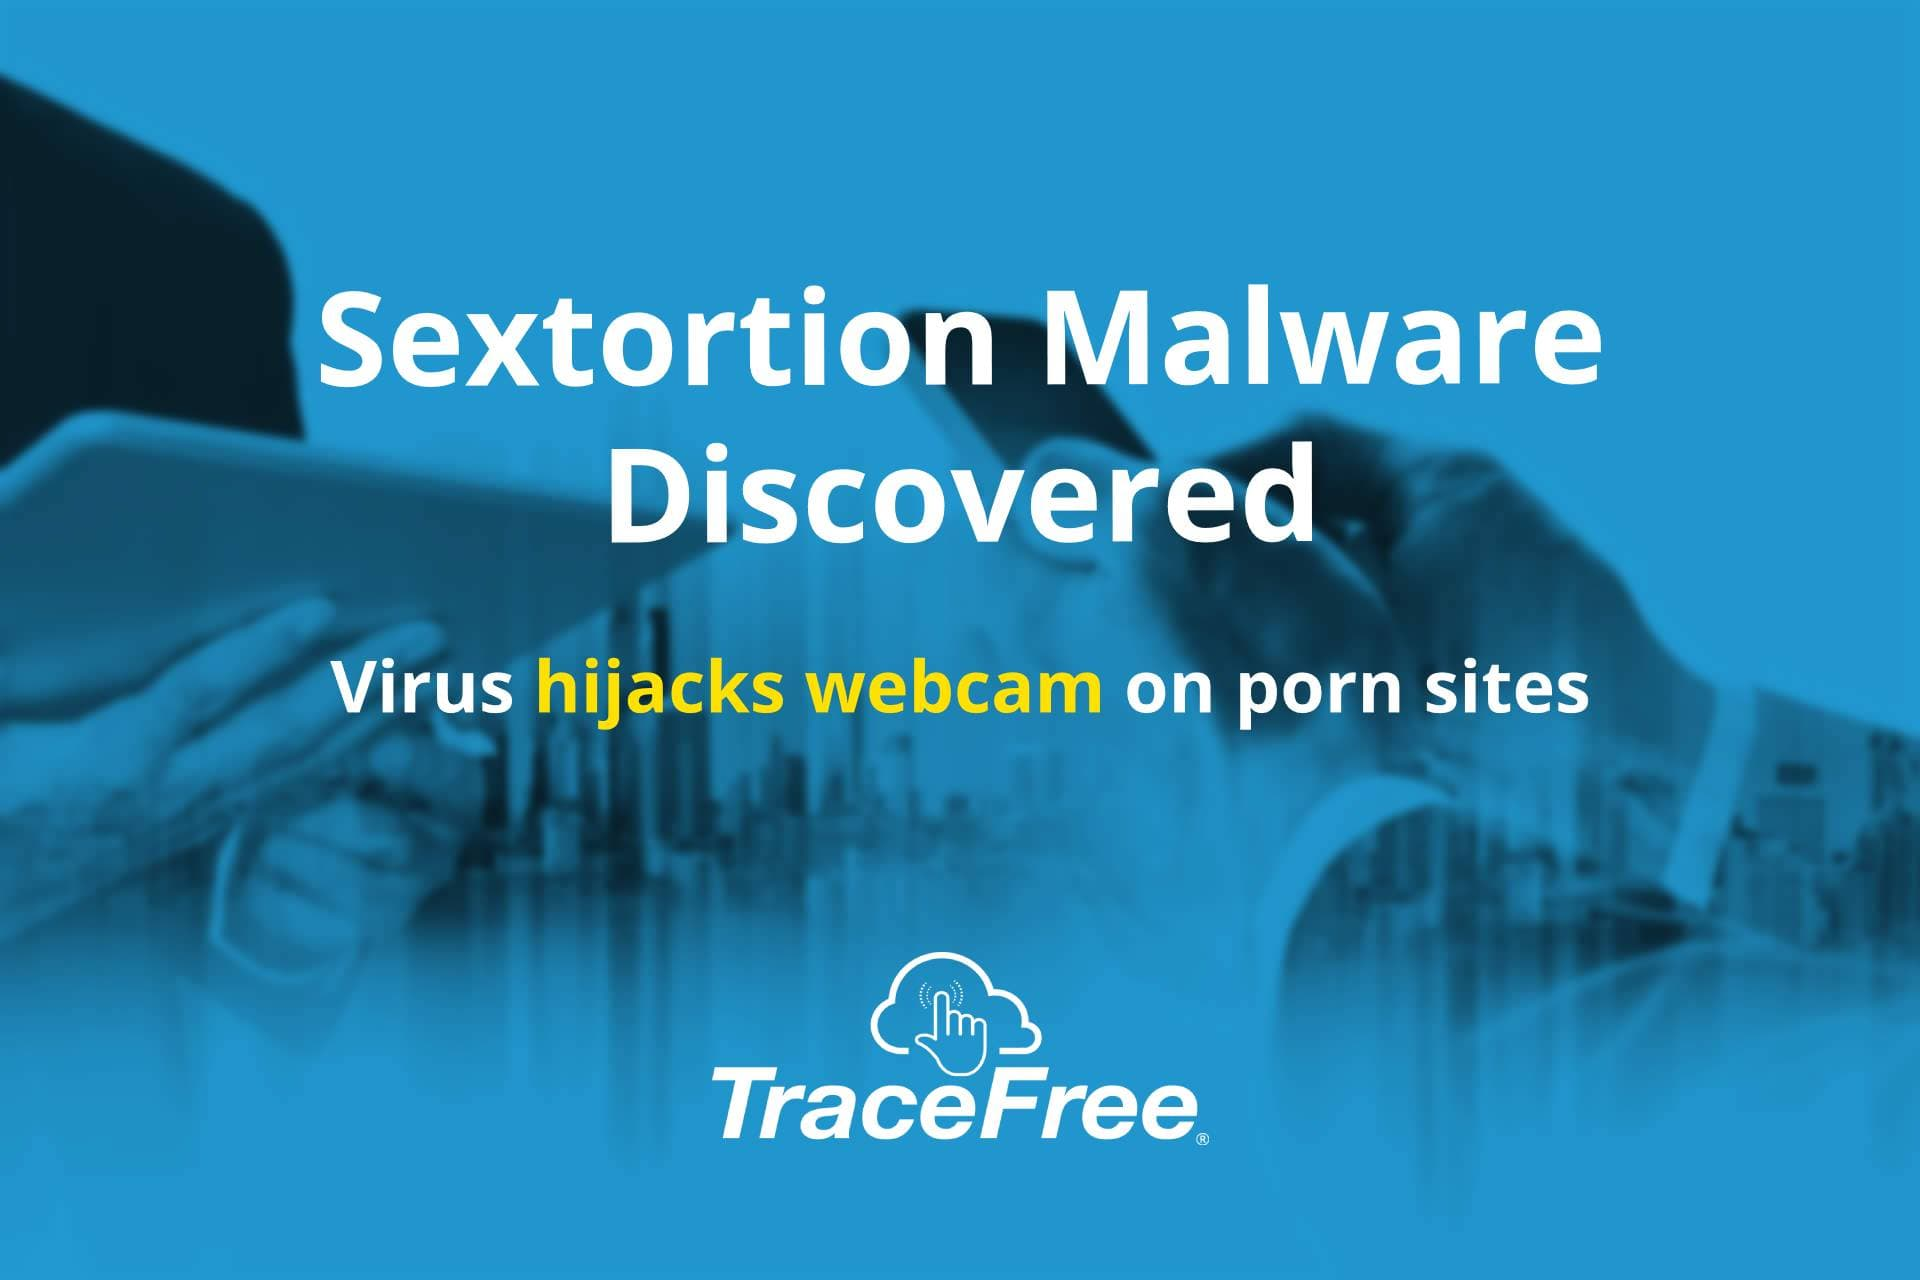 Malware That Records People Enjoying Porn Discovered